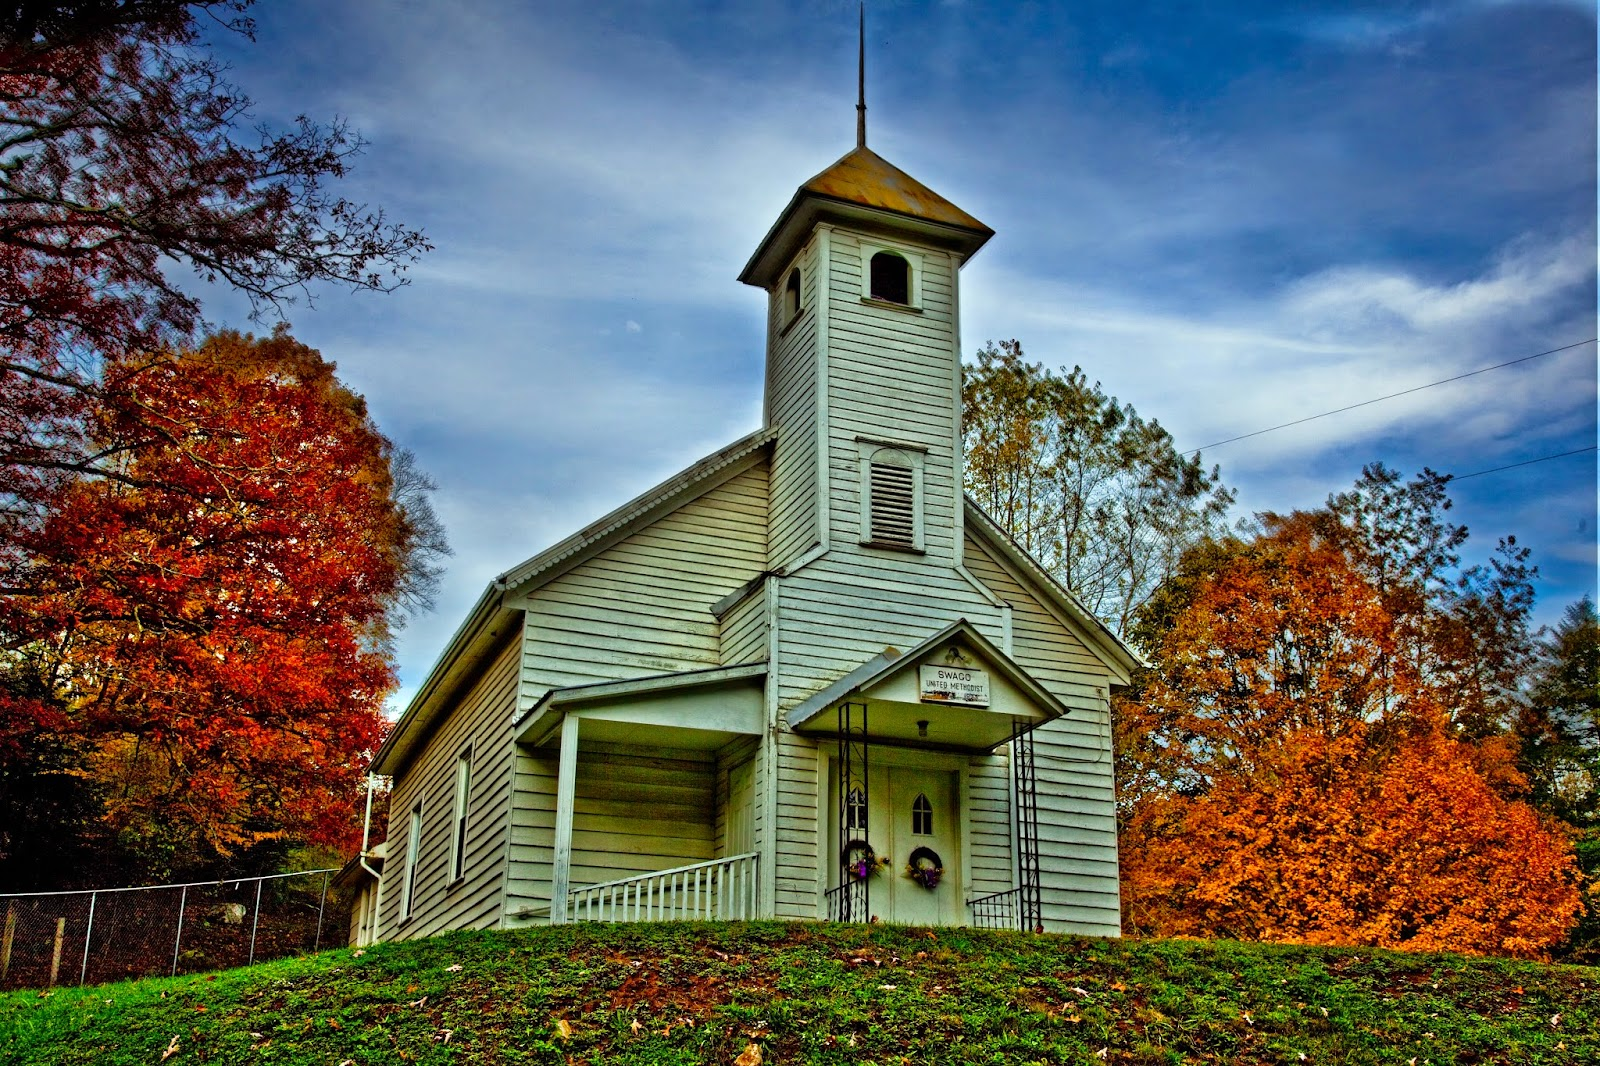 A small country church found in the mountains of West Virginia. On a clear autumn day the fall colors around this church accent the old fashioned charm of a little white church beside the road.  Picture Height: 3744 pixels Picture Width: 5616 pixels Lens Aperture: f/8 Image Exposure Time: 1/160 sec Lens Focal Length mm: 35 mm Photo Exposure Value: 0 EV Camera Model: Canon EOS 5D Mark II Photo White Balance: 0 Color Space: sRGB